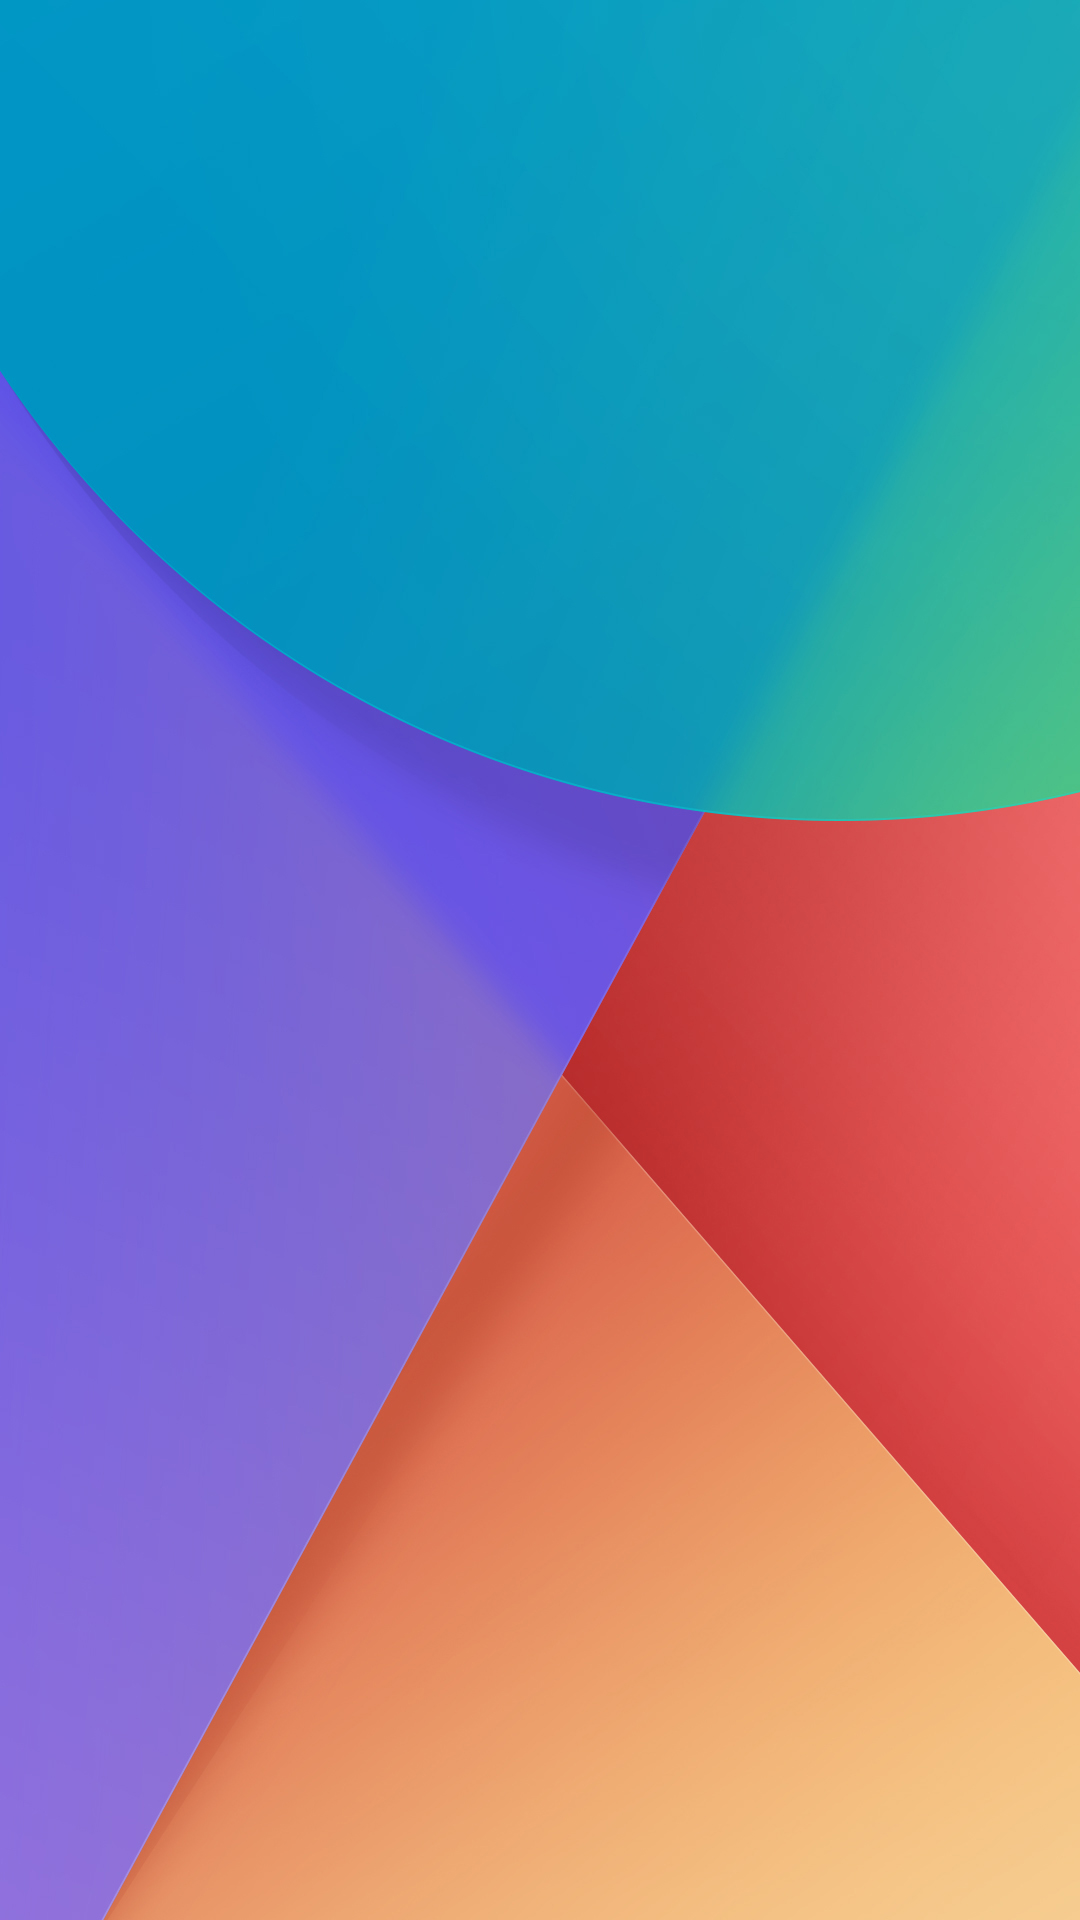 Oppo 3d Wallpaper Xiaomi Mi A1 Stock Wallpaper 1 1080x1920